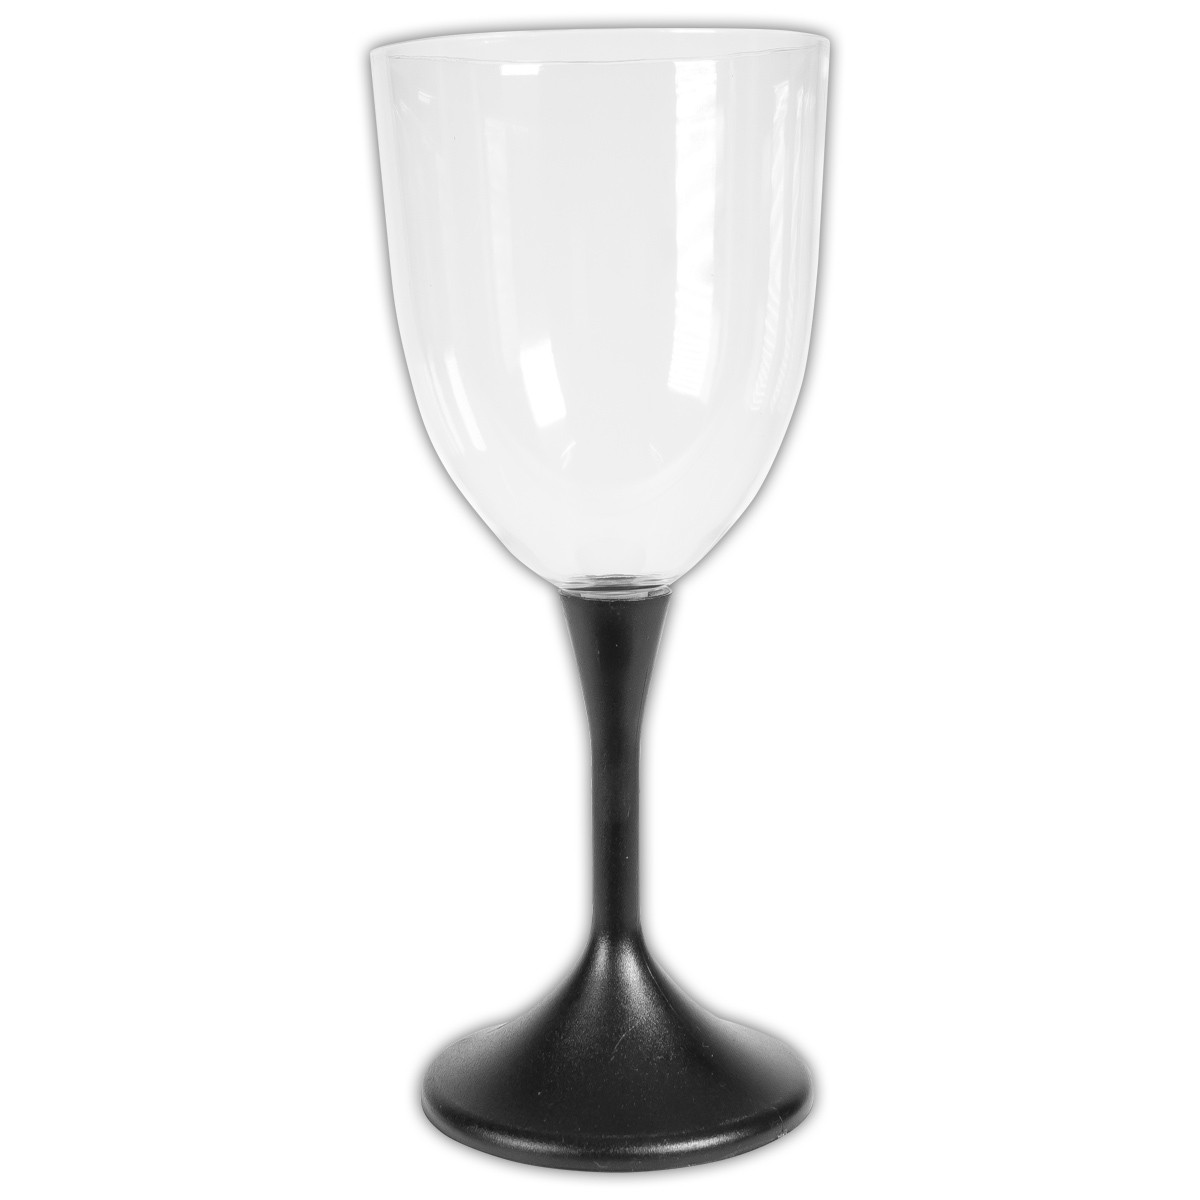 Wine Glasses With Black Stems Light Up Wine Glass With Black Stem And Clear Top 10